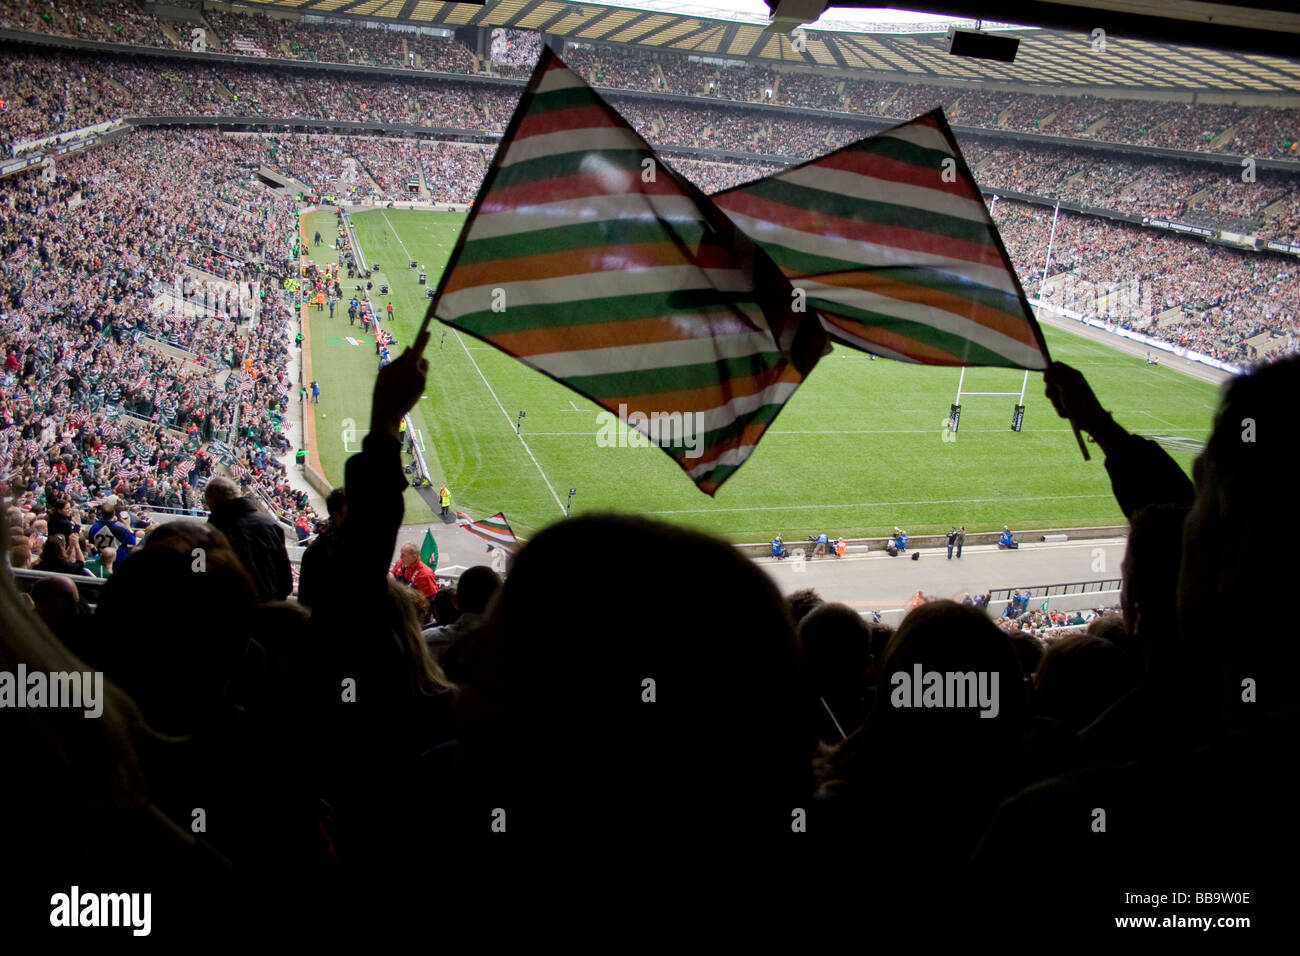 Two Leicester Tigers fans at the Guinness Premiership final in Twickenham stadium 2009. Stock Photo